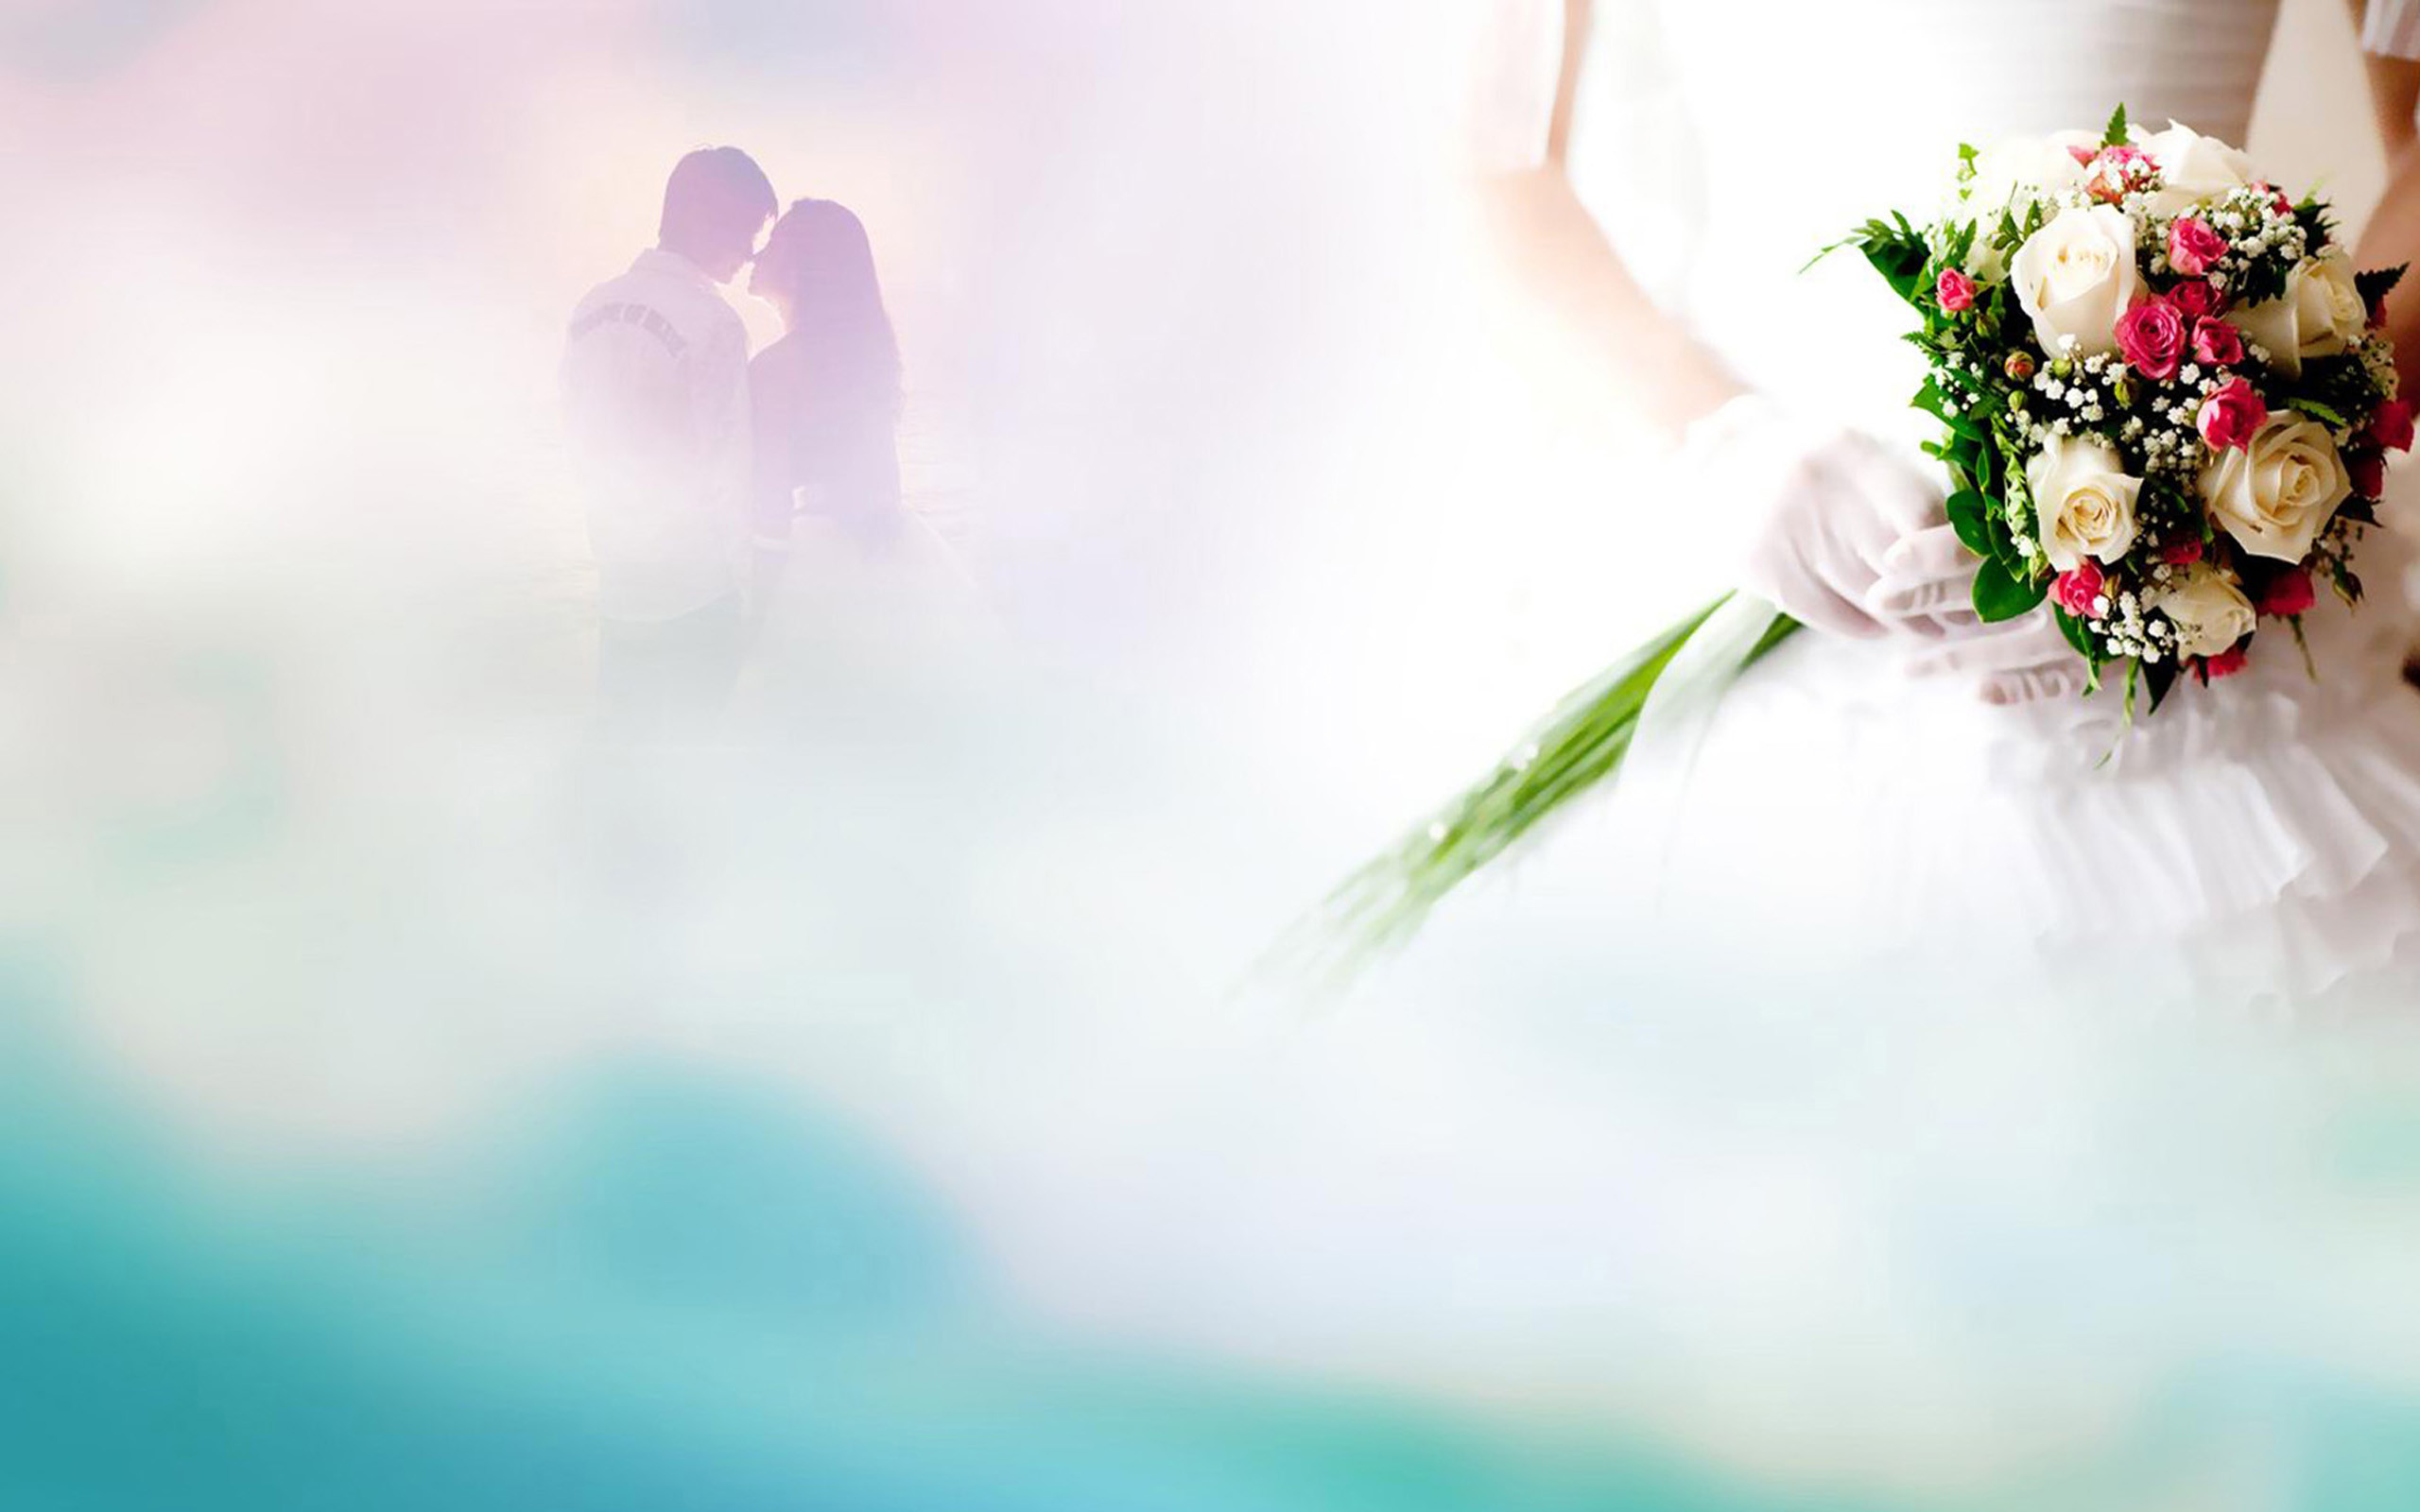 Res: 2560x1600, Wedding Wallpaper